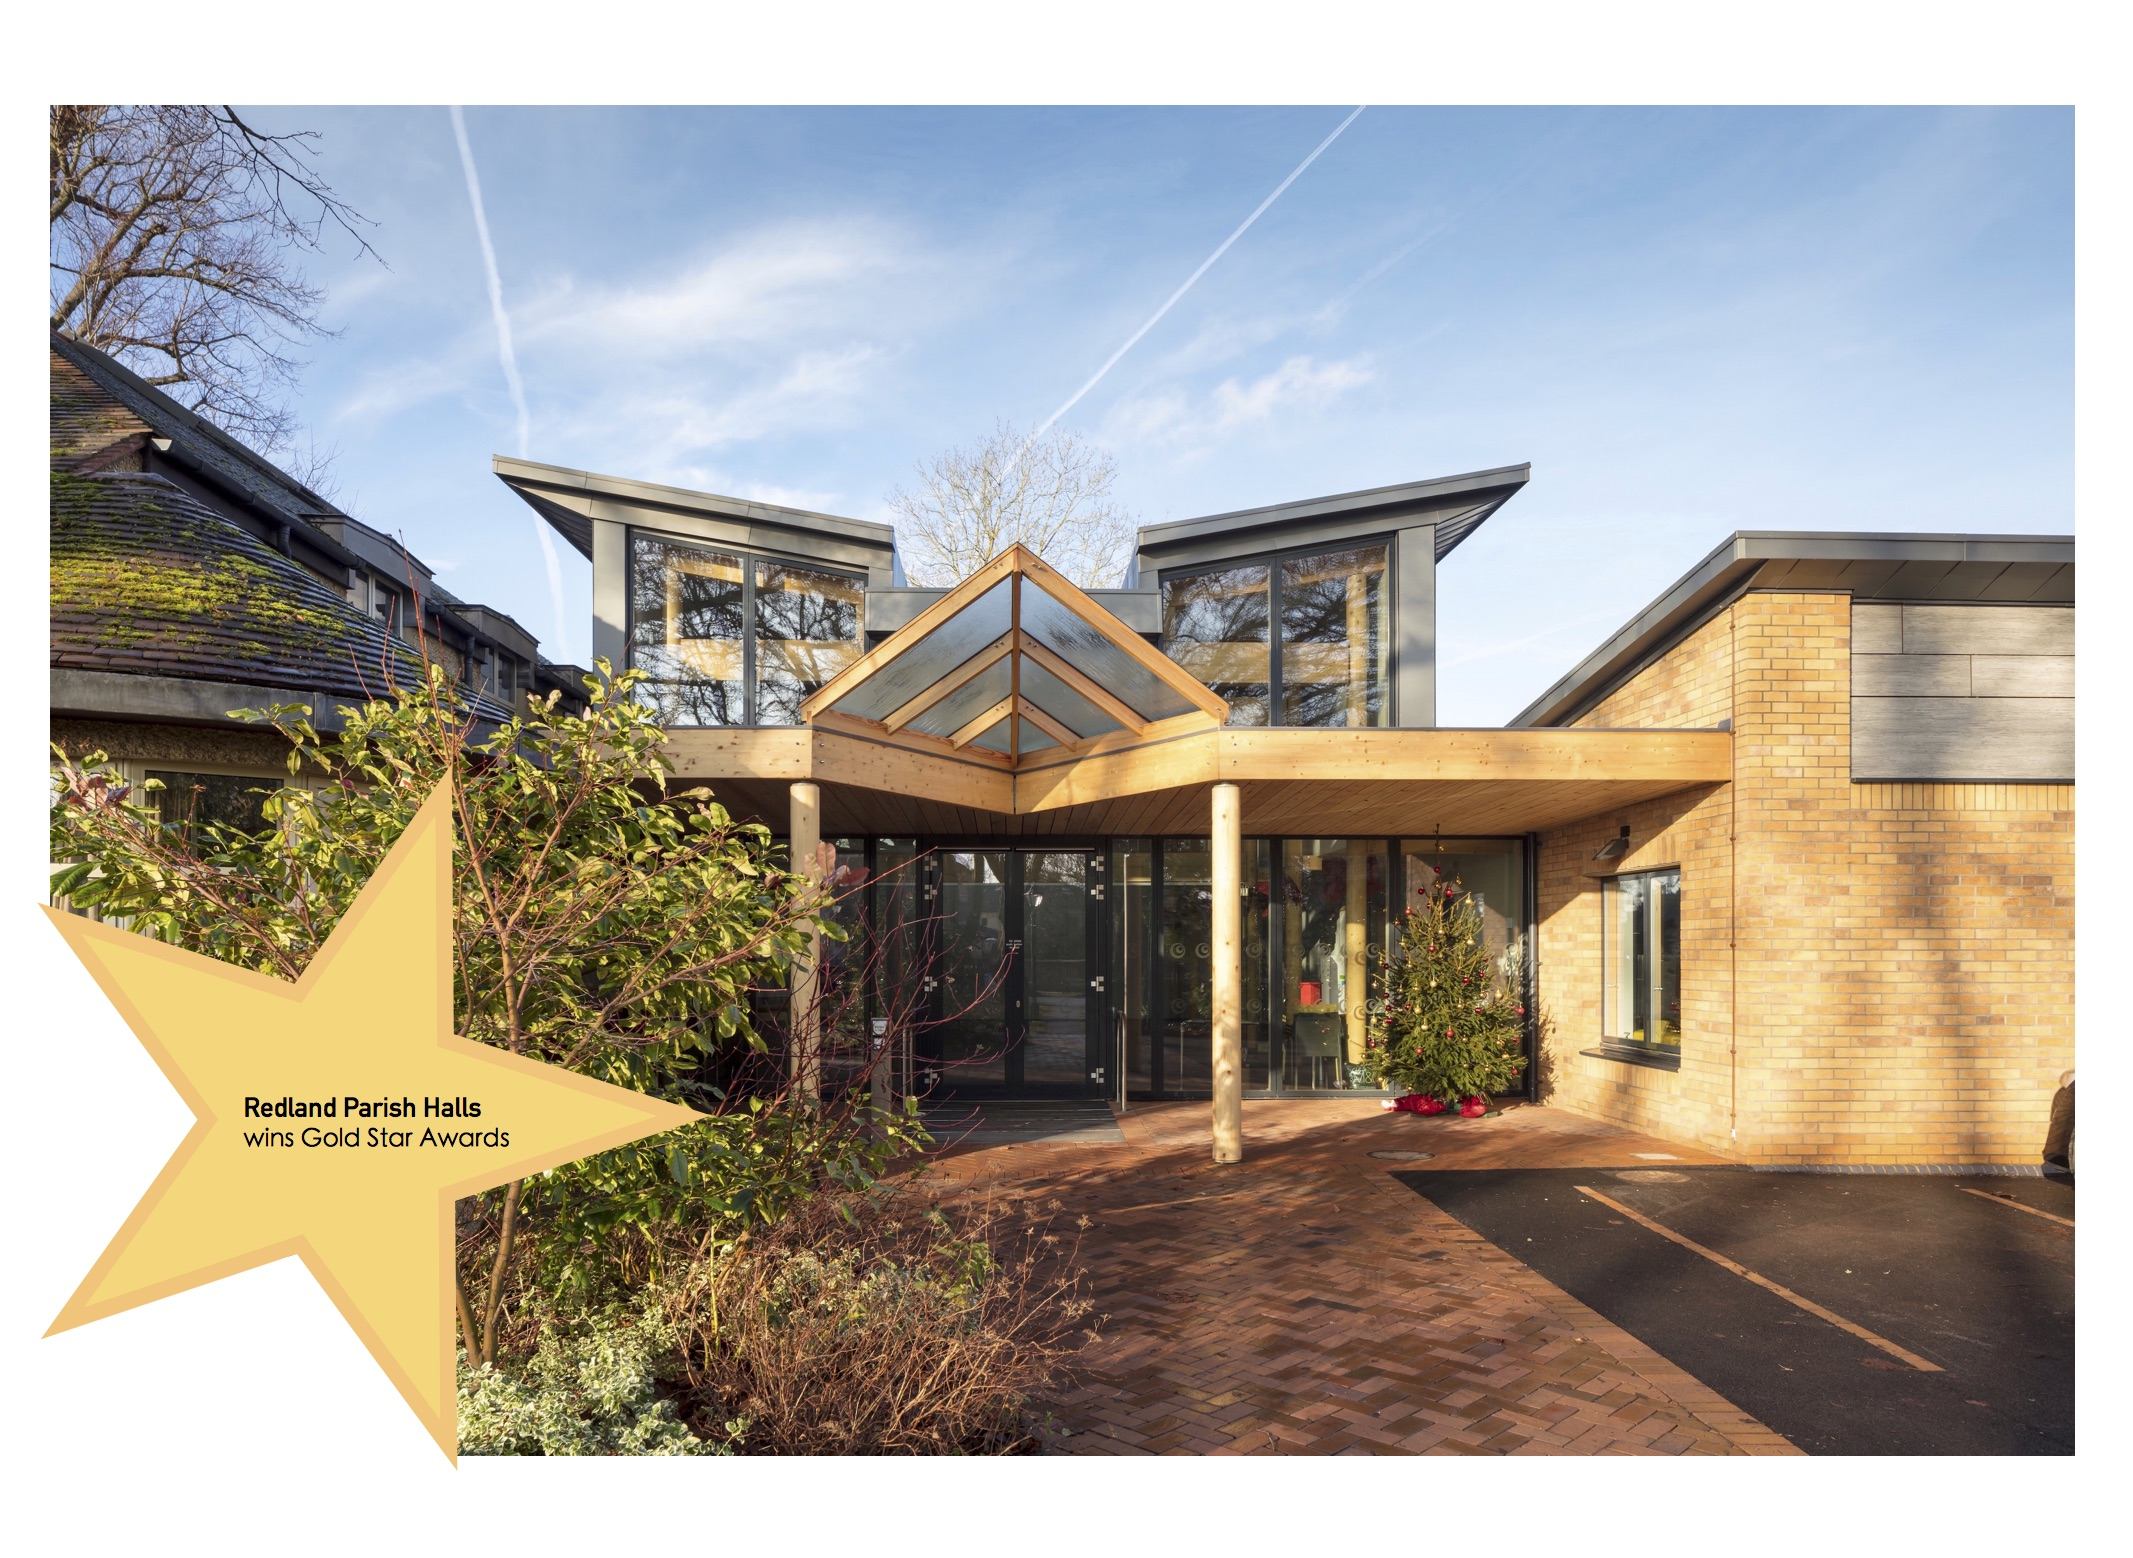 Redland and Cotham Amenities Society have awarded a Gold Star Award to Redland Parish Church Halls for quality design